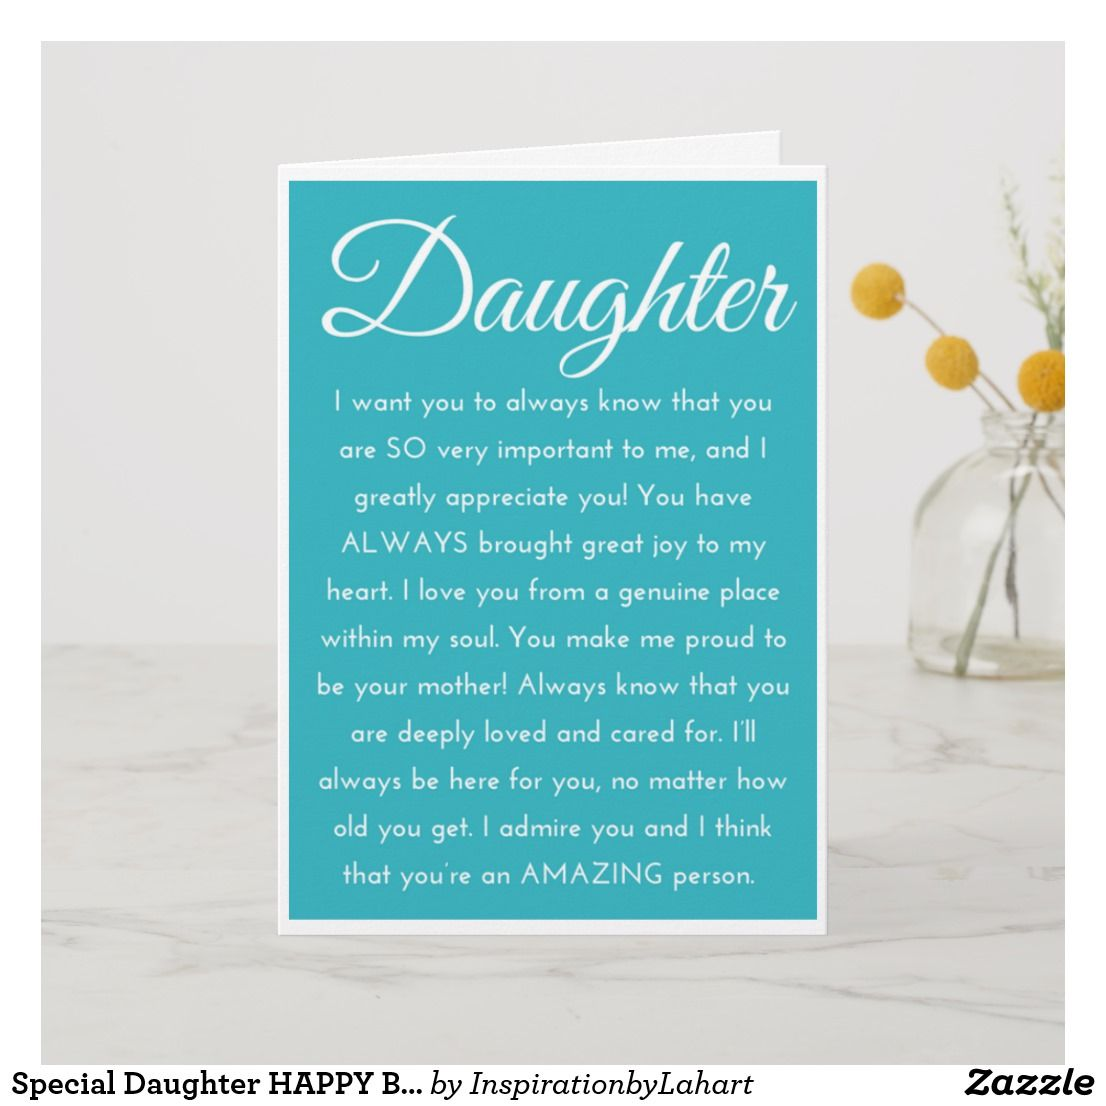 special daughter happy birthday wishes card  zazzle